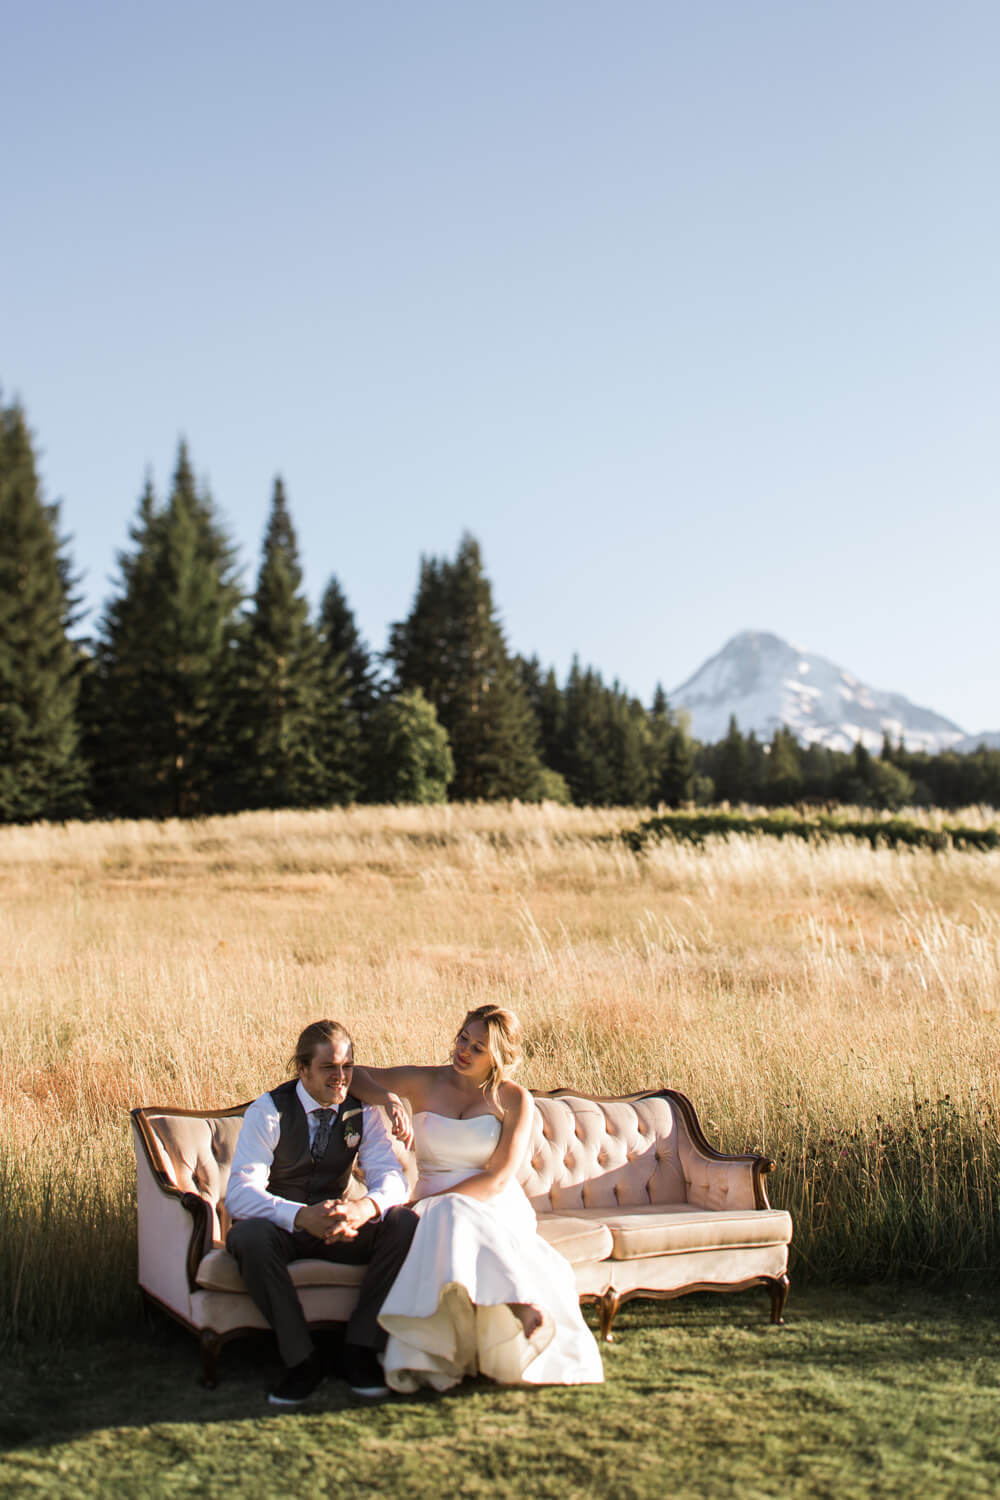 Young couple casually sits in golden sun light with Mt. Hood in the background.